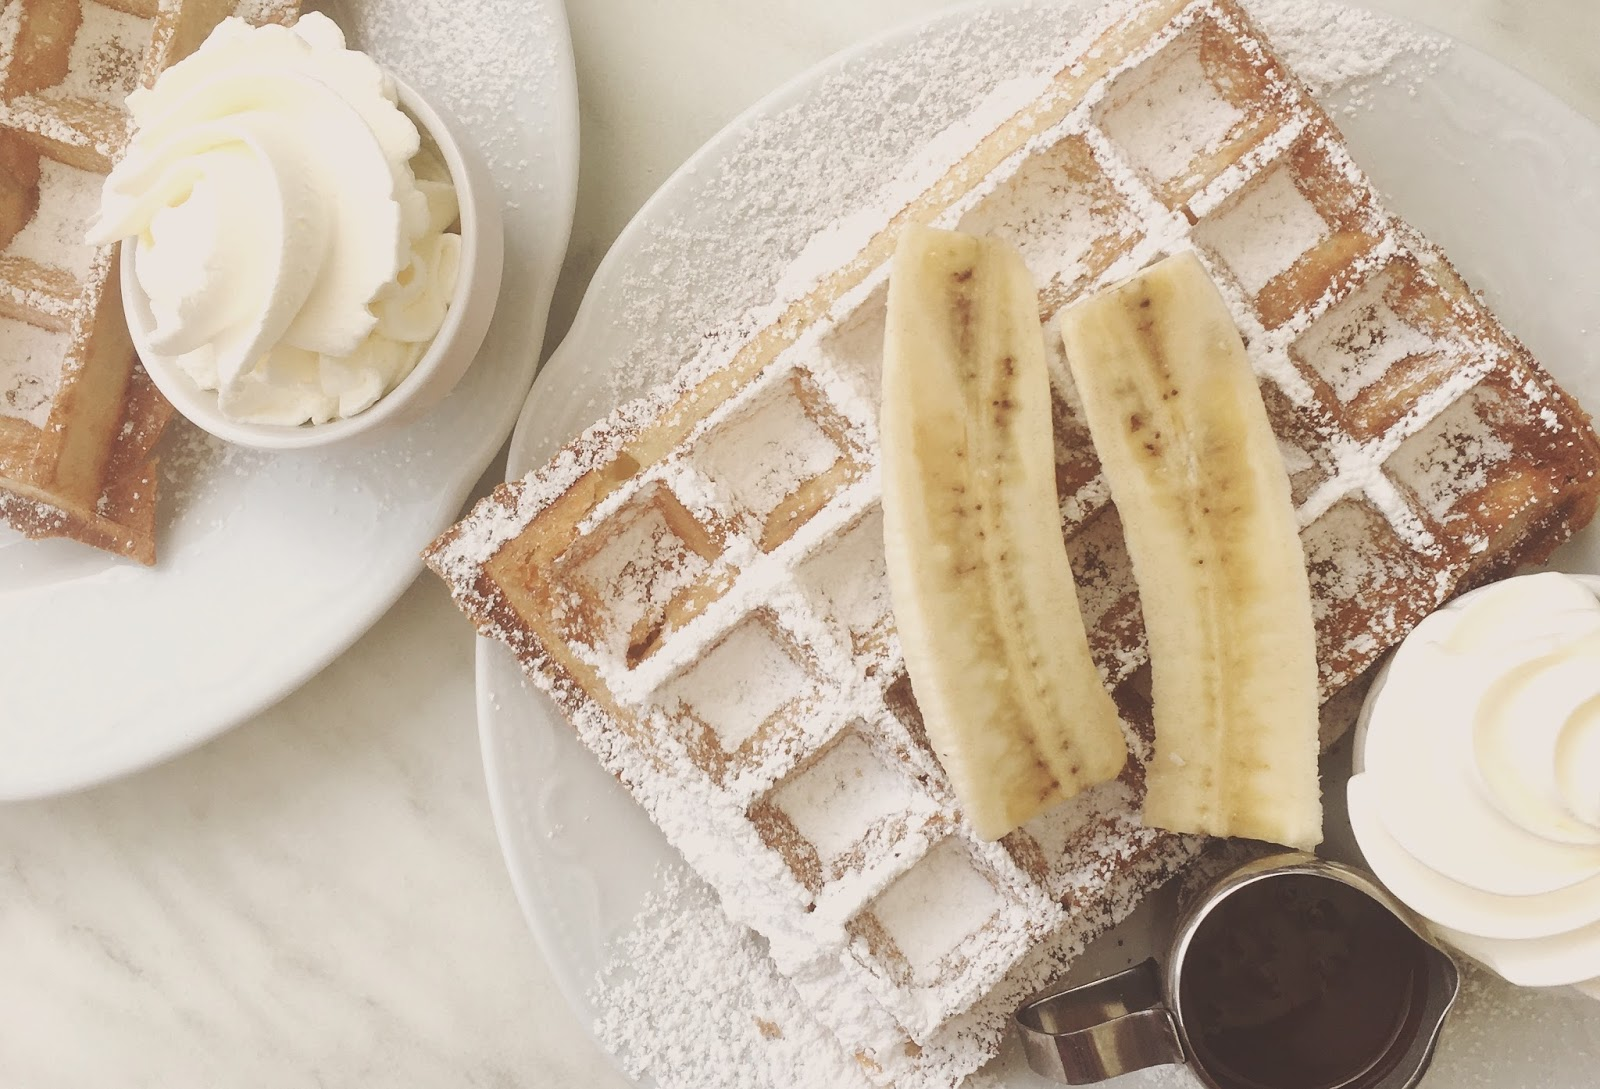 Food to try in Belgium